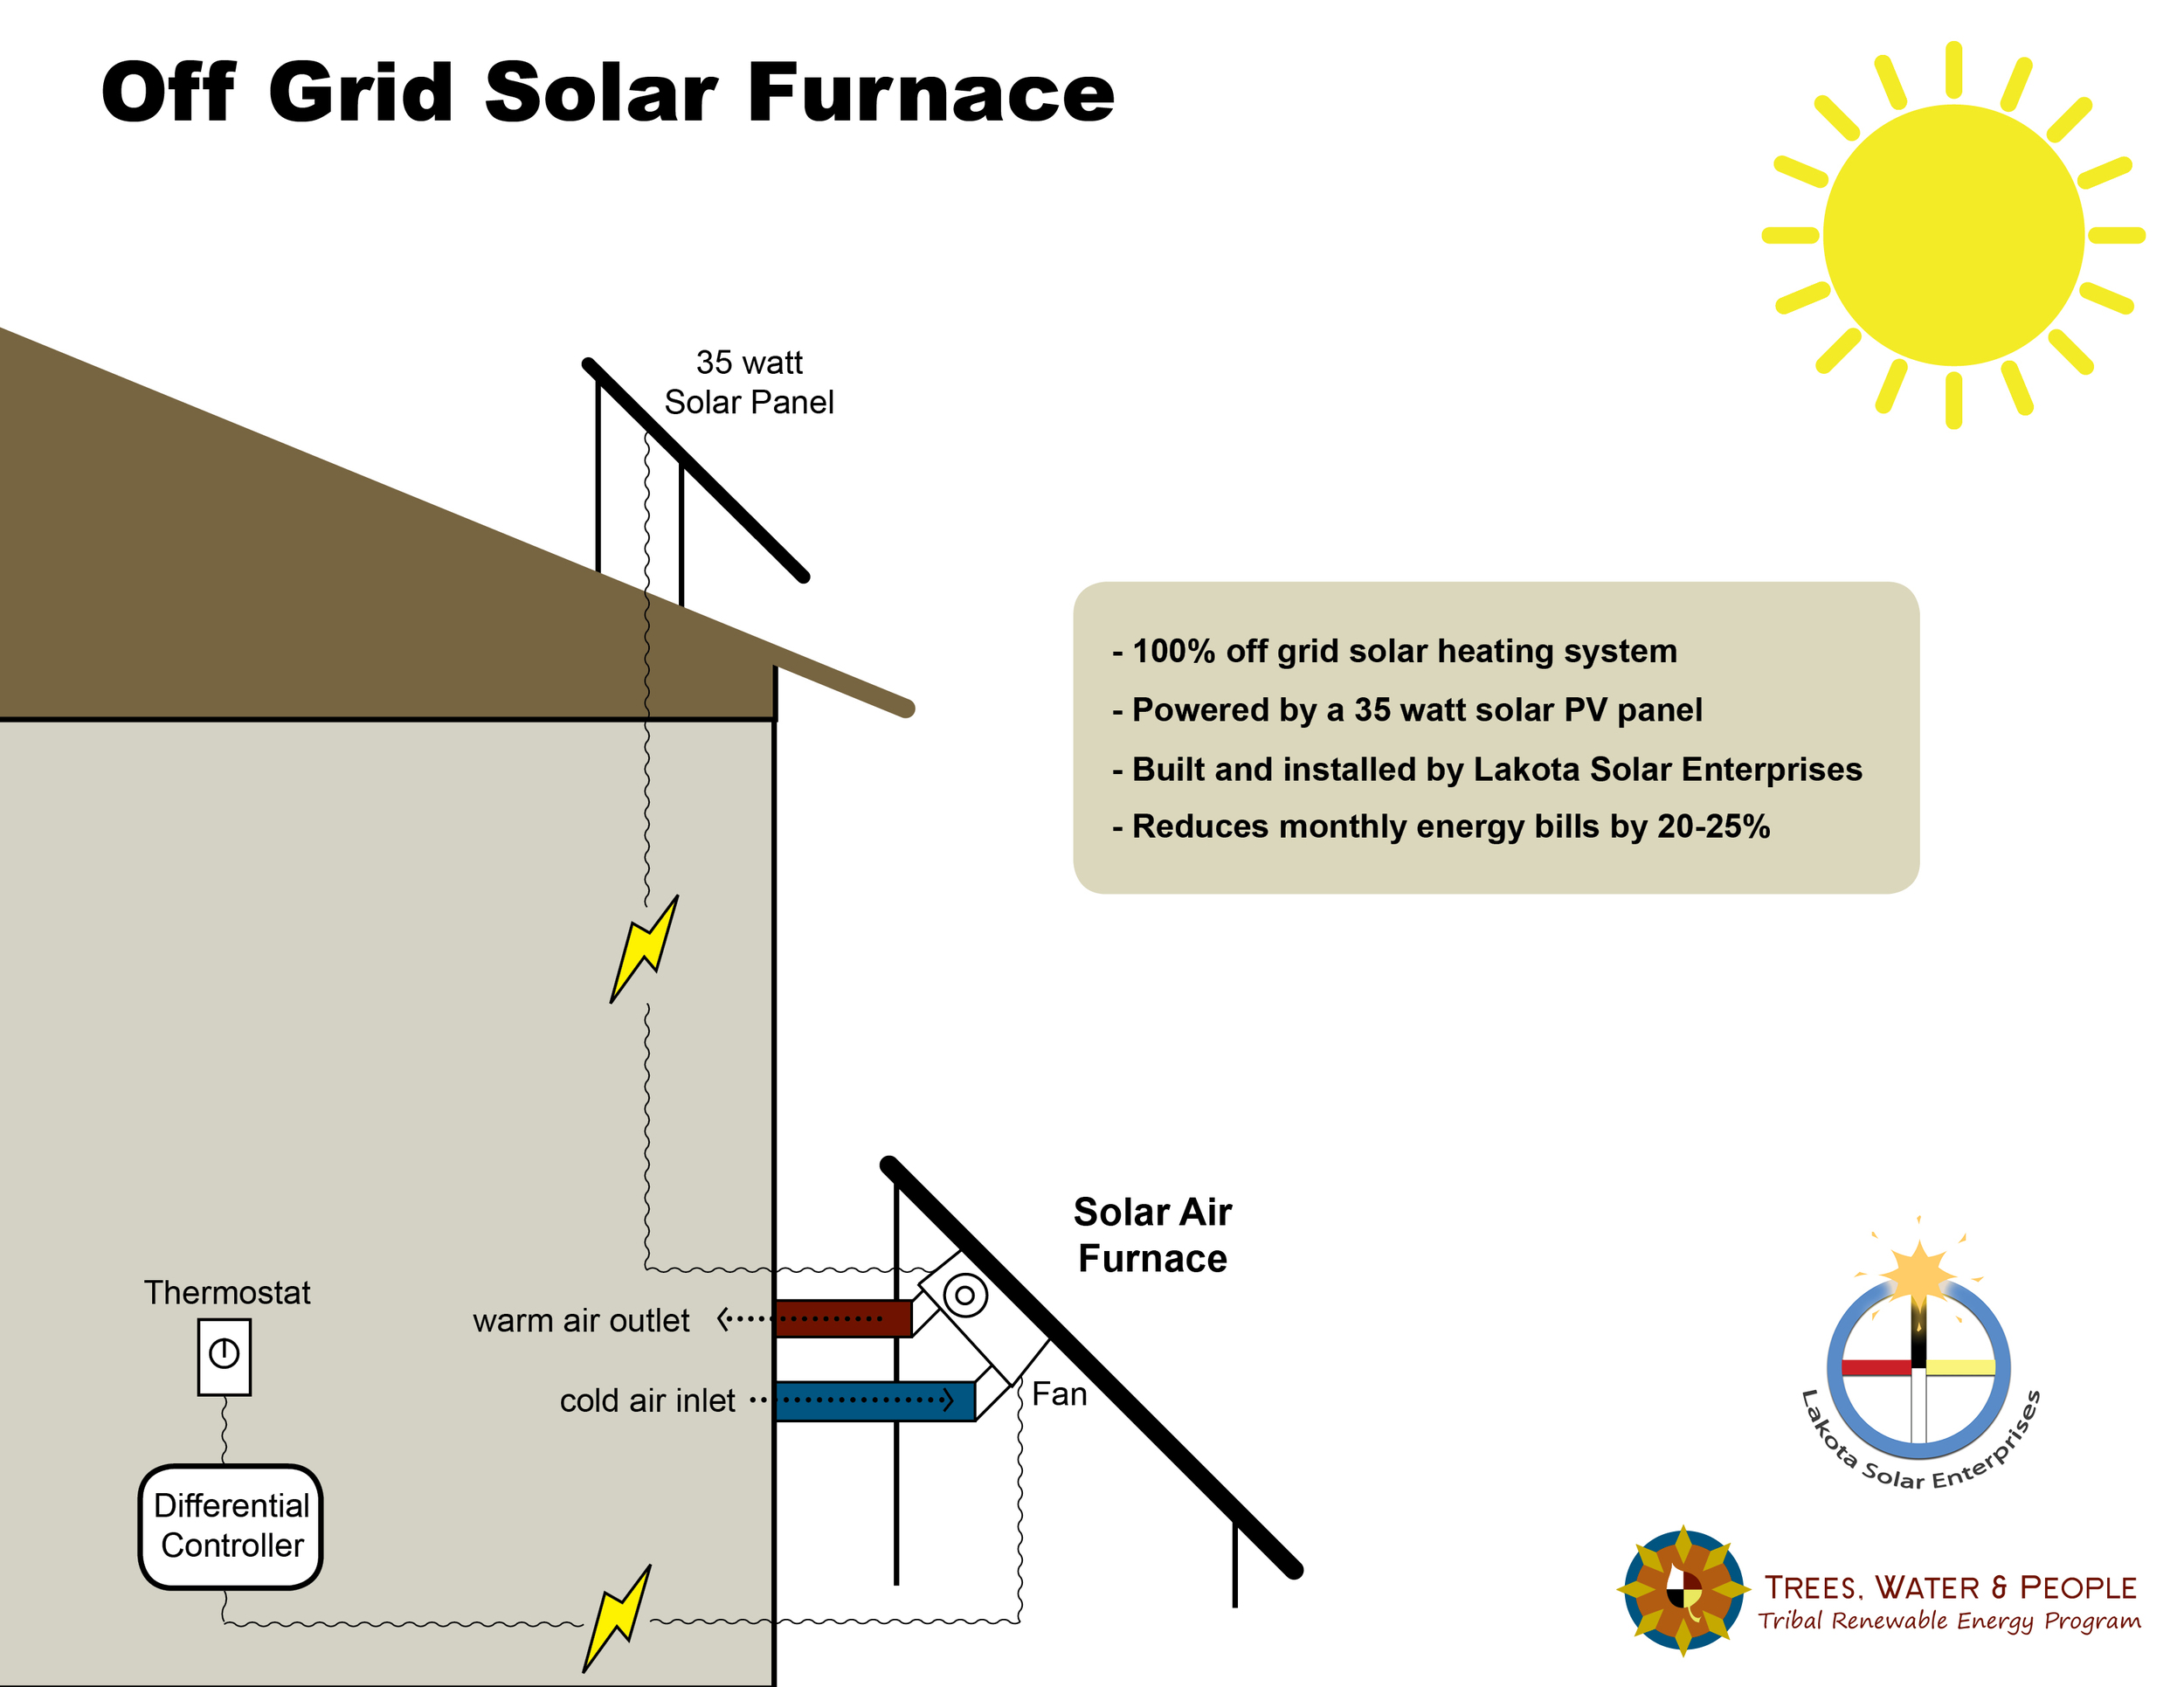 off-grid-solar-furnace.jpg